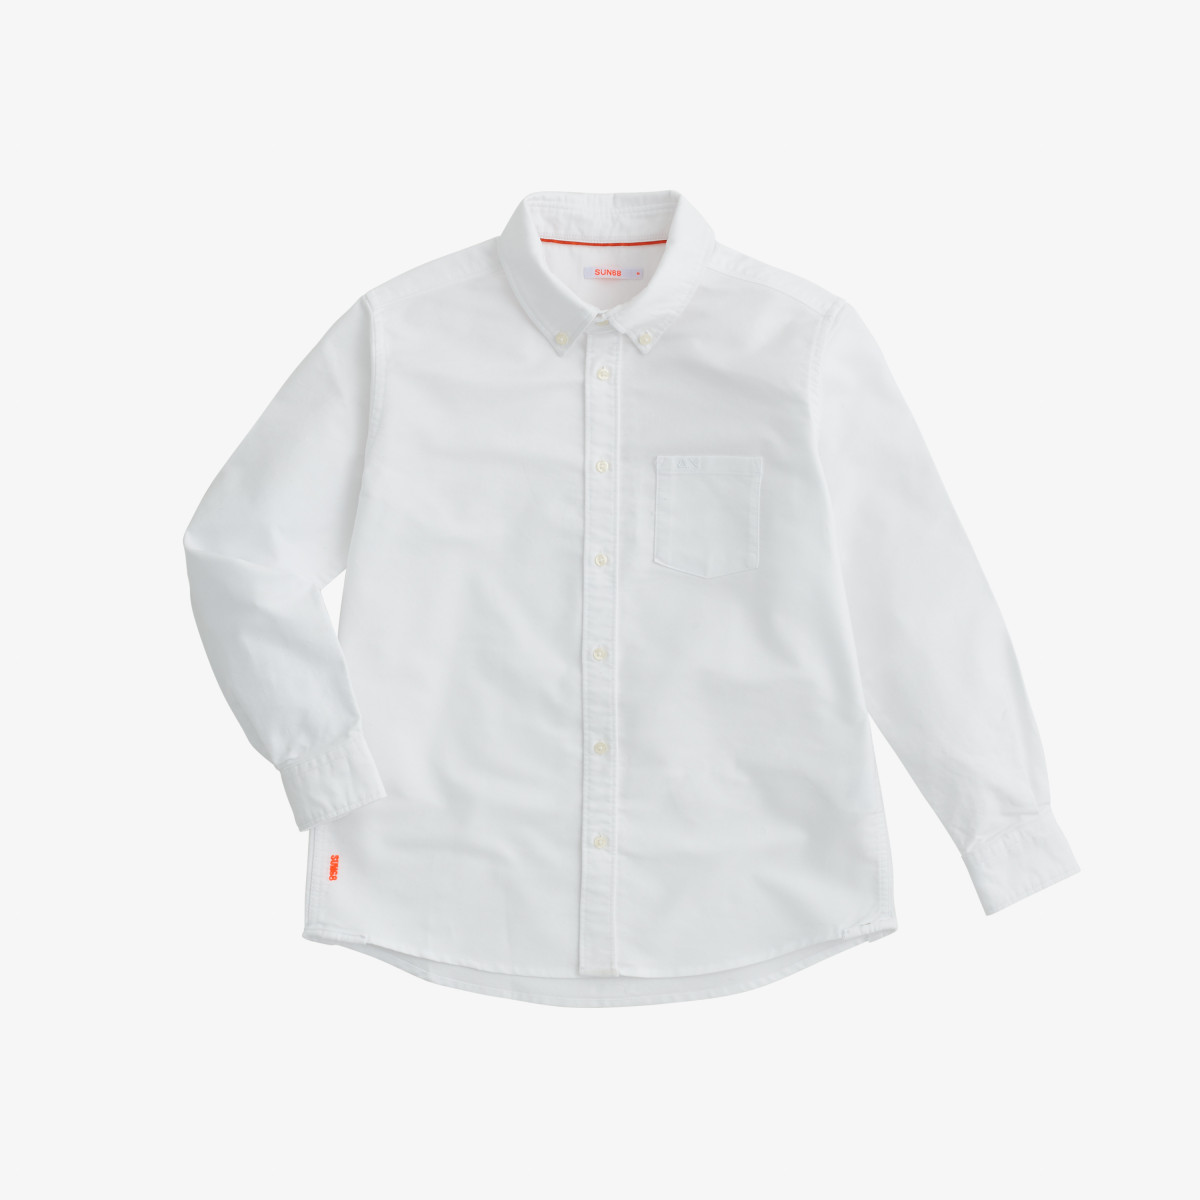 BOY'S SHIRT OXFORD B/D L/S WHITE